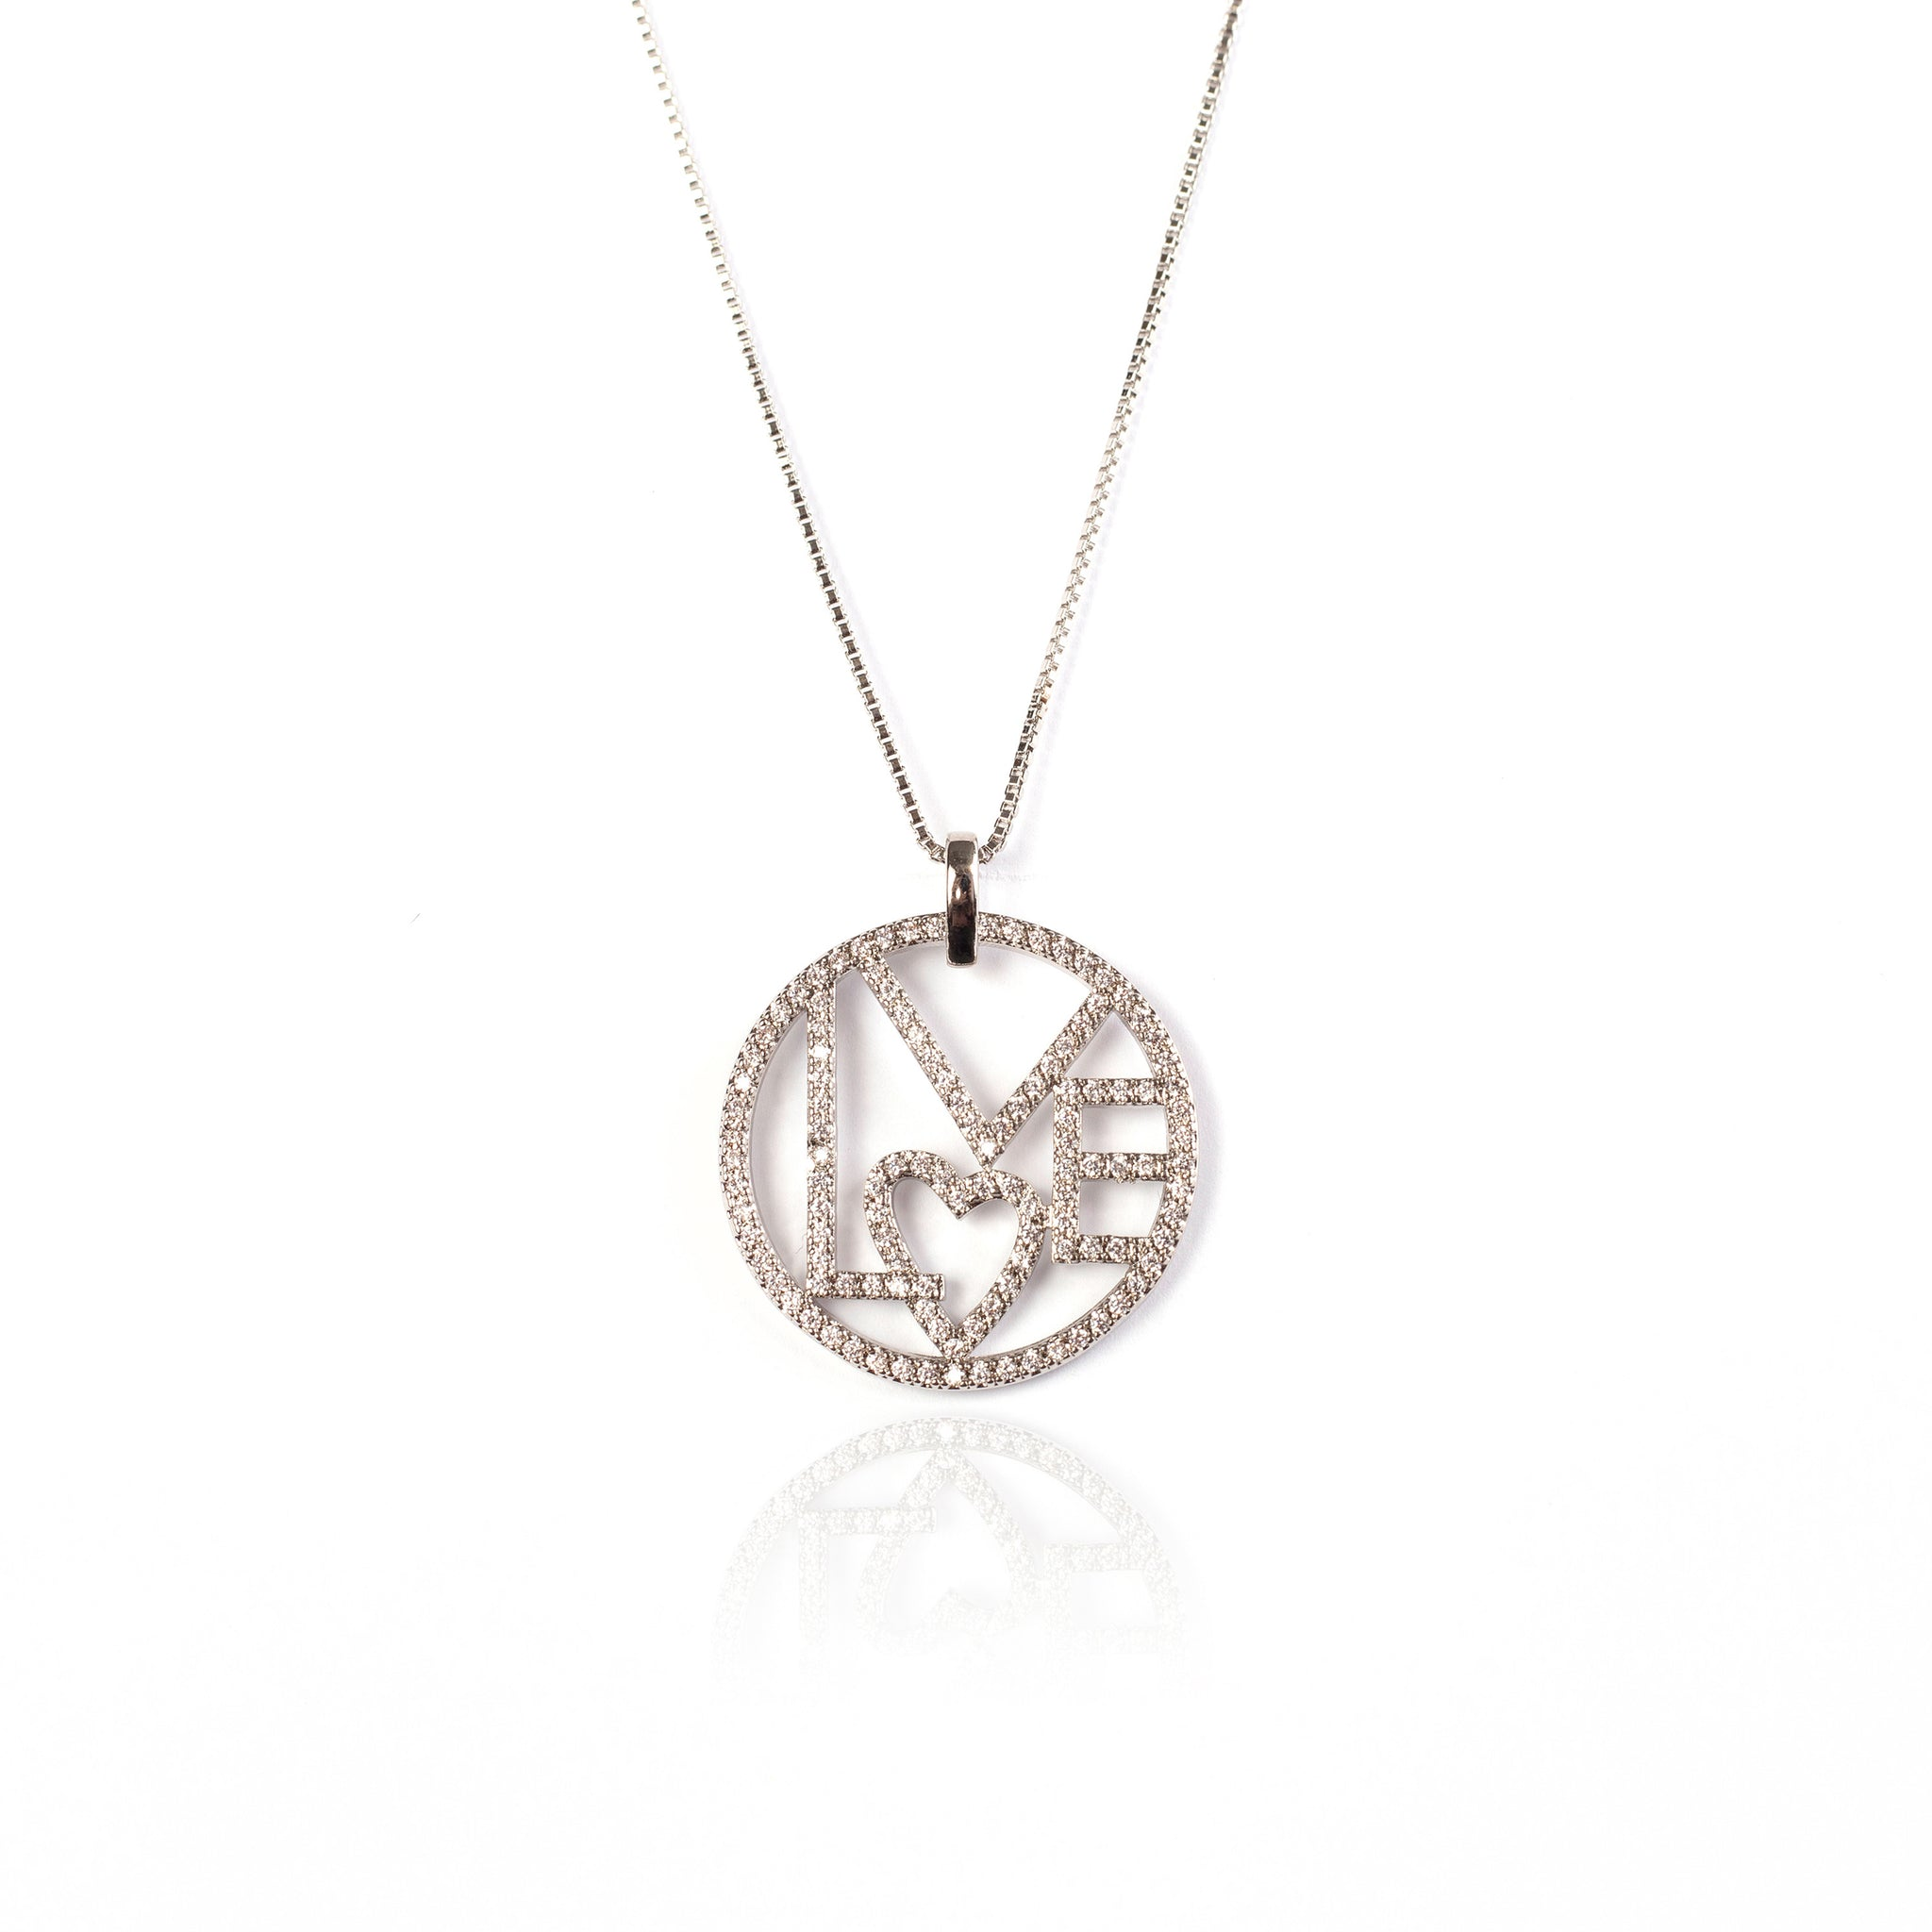 LOVE NECKLACE | White Rhodium Plated